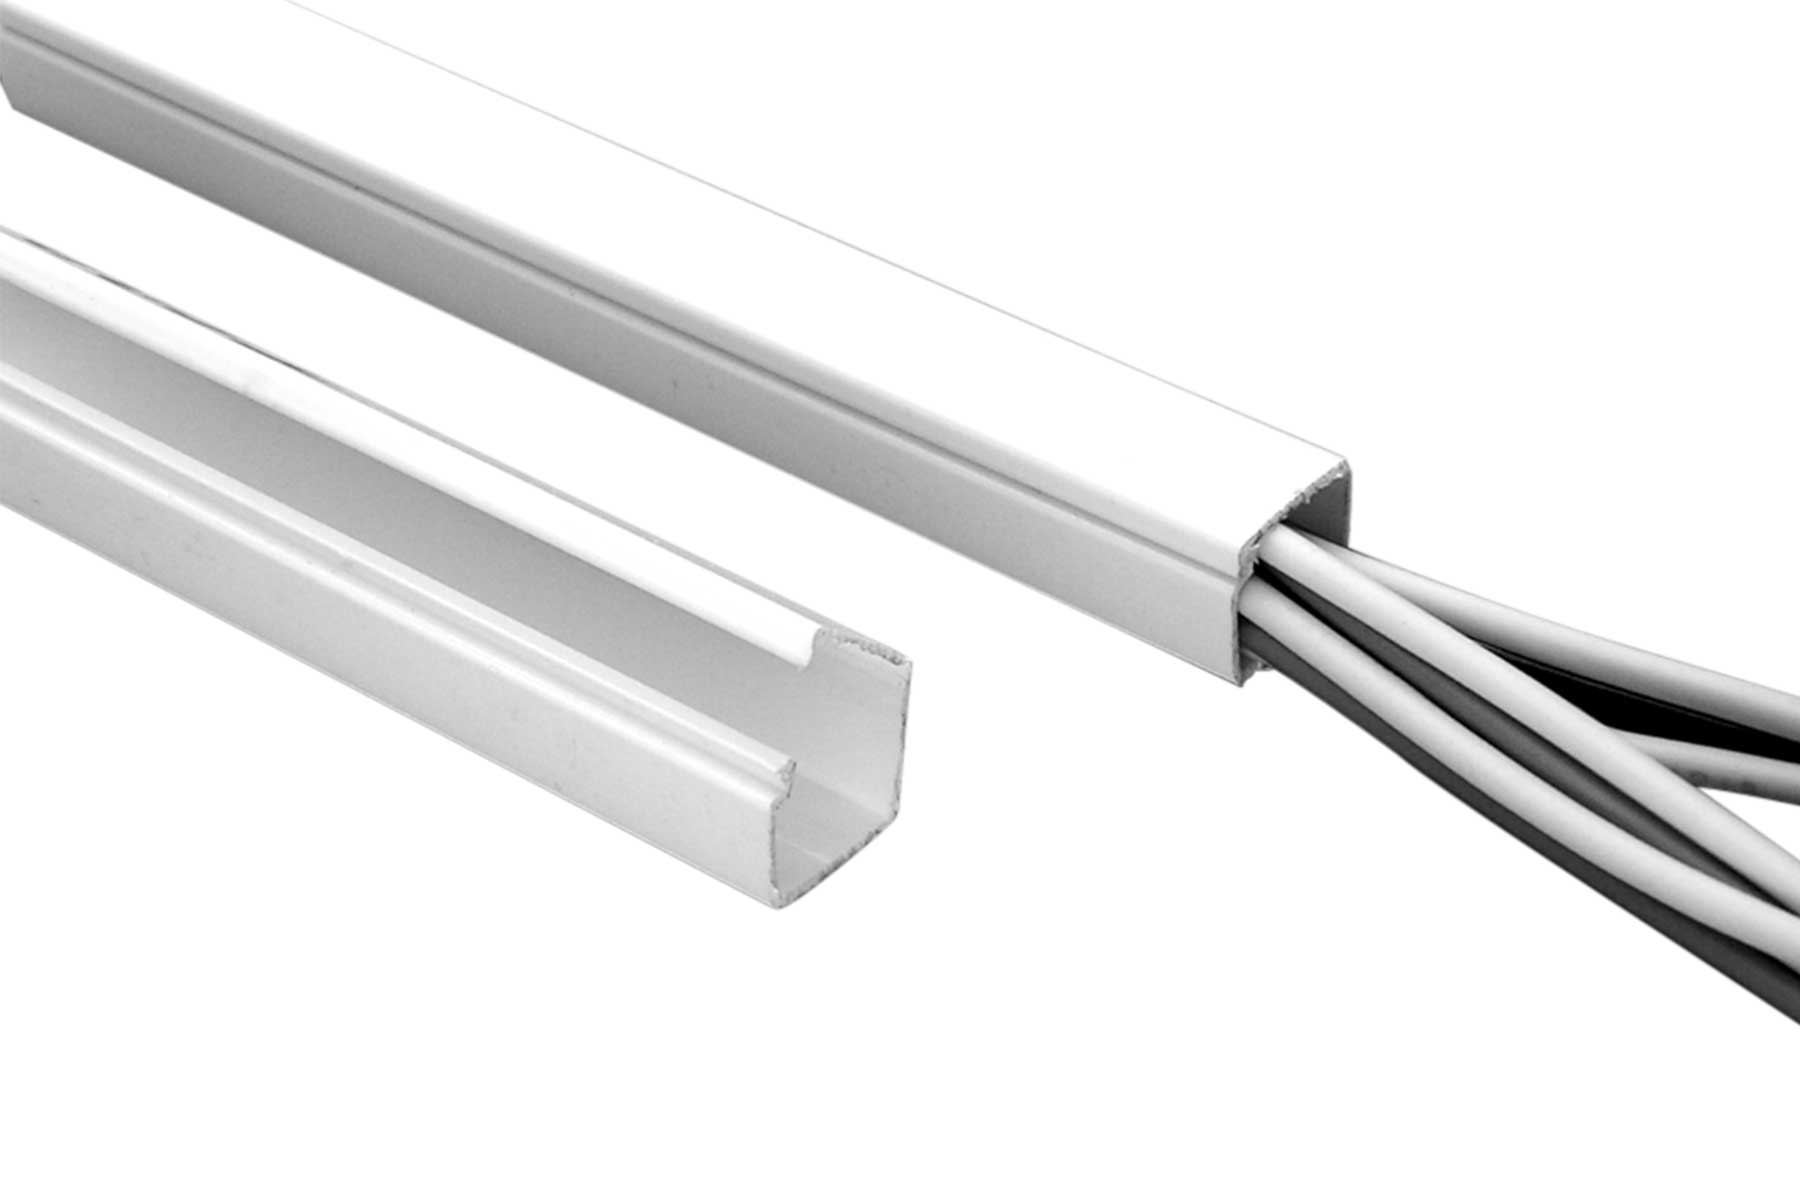 One Piece Solid Wire Duct with Hinged Cover